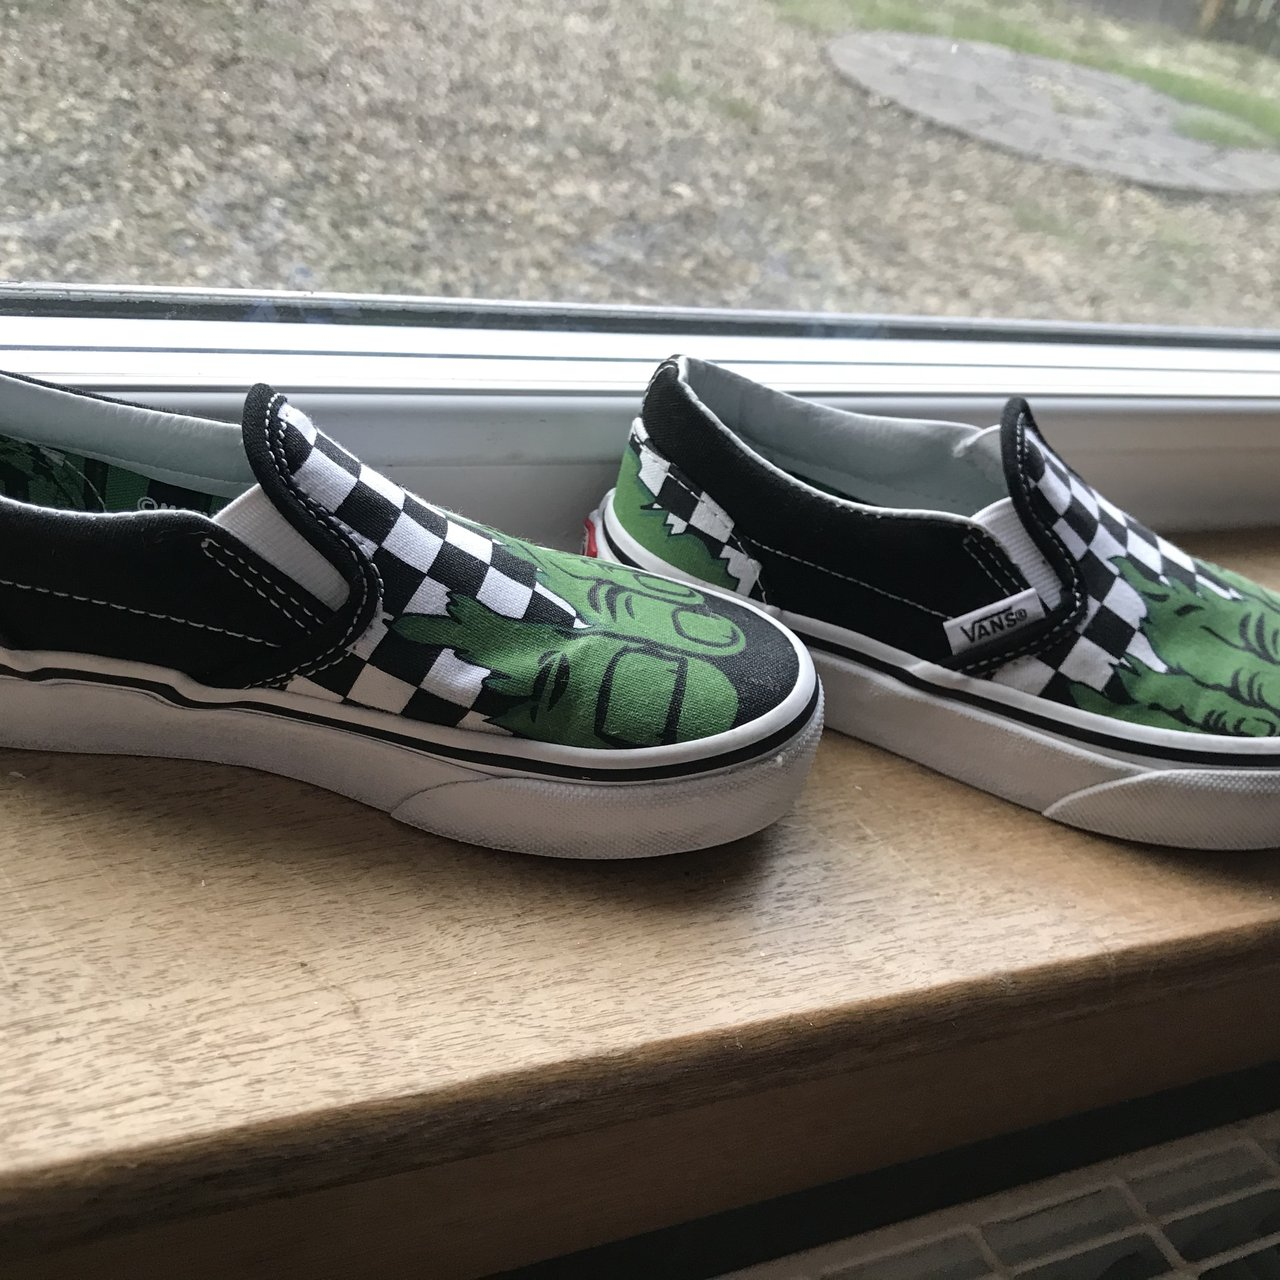 790b0444a0a Boys size 12 hulk vans. Very small made would fit 10 11. for - Depop